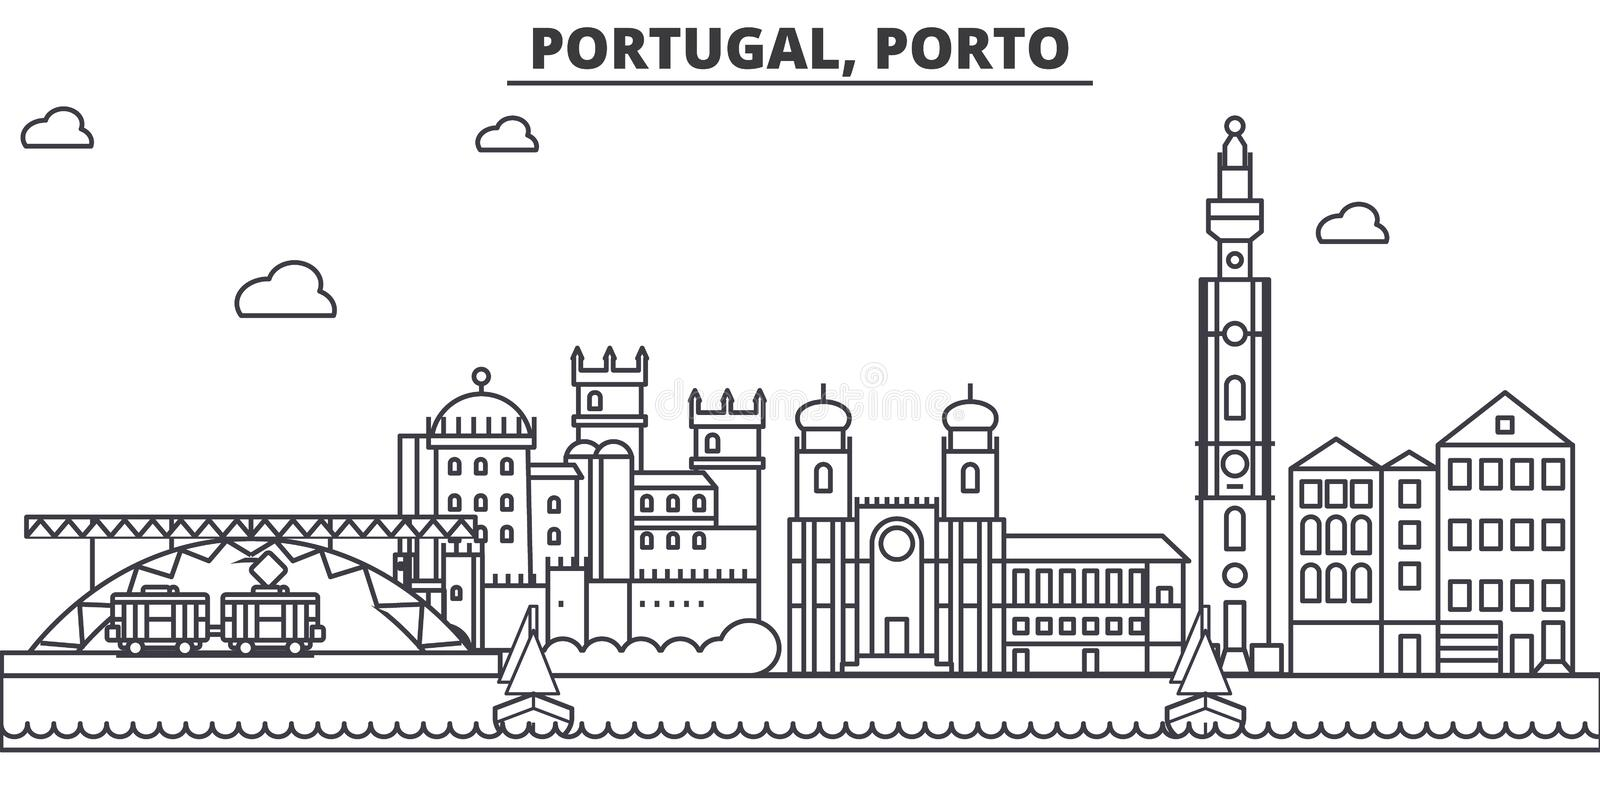 Portugal, Porto architecture line skyline illustration. Linear vector cityscape with famous landmarks, city sights. Design icons. Editable strokes stock illustration